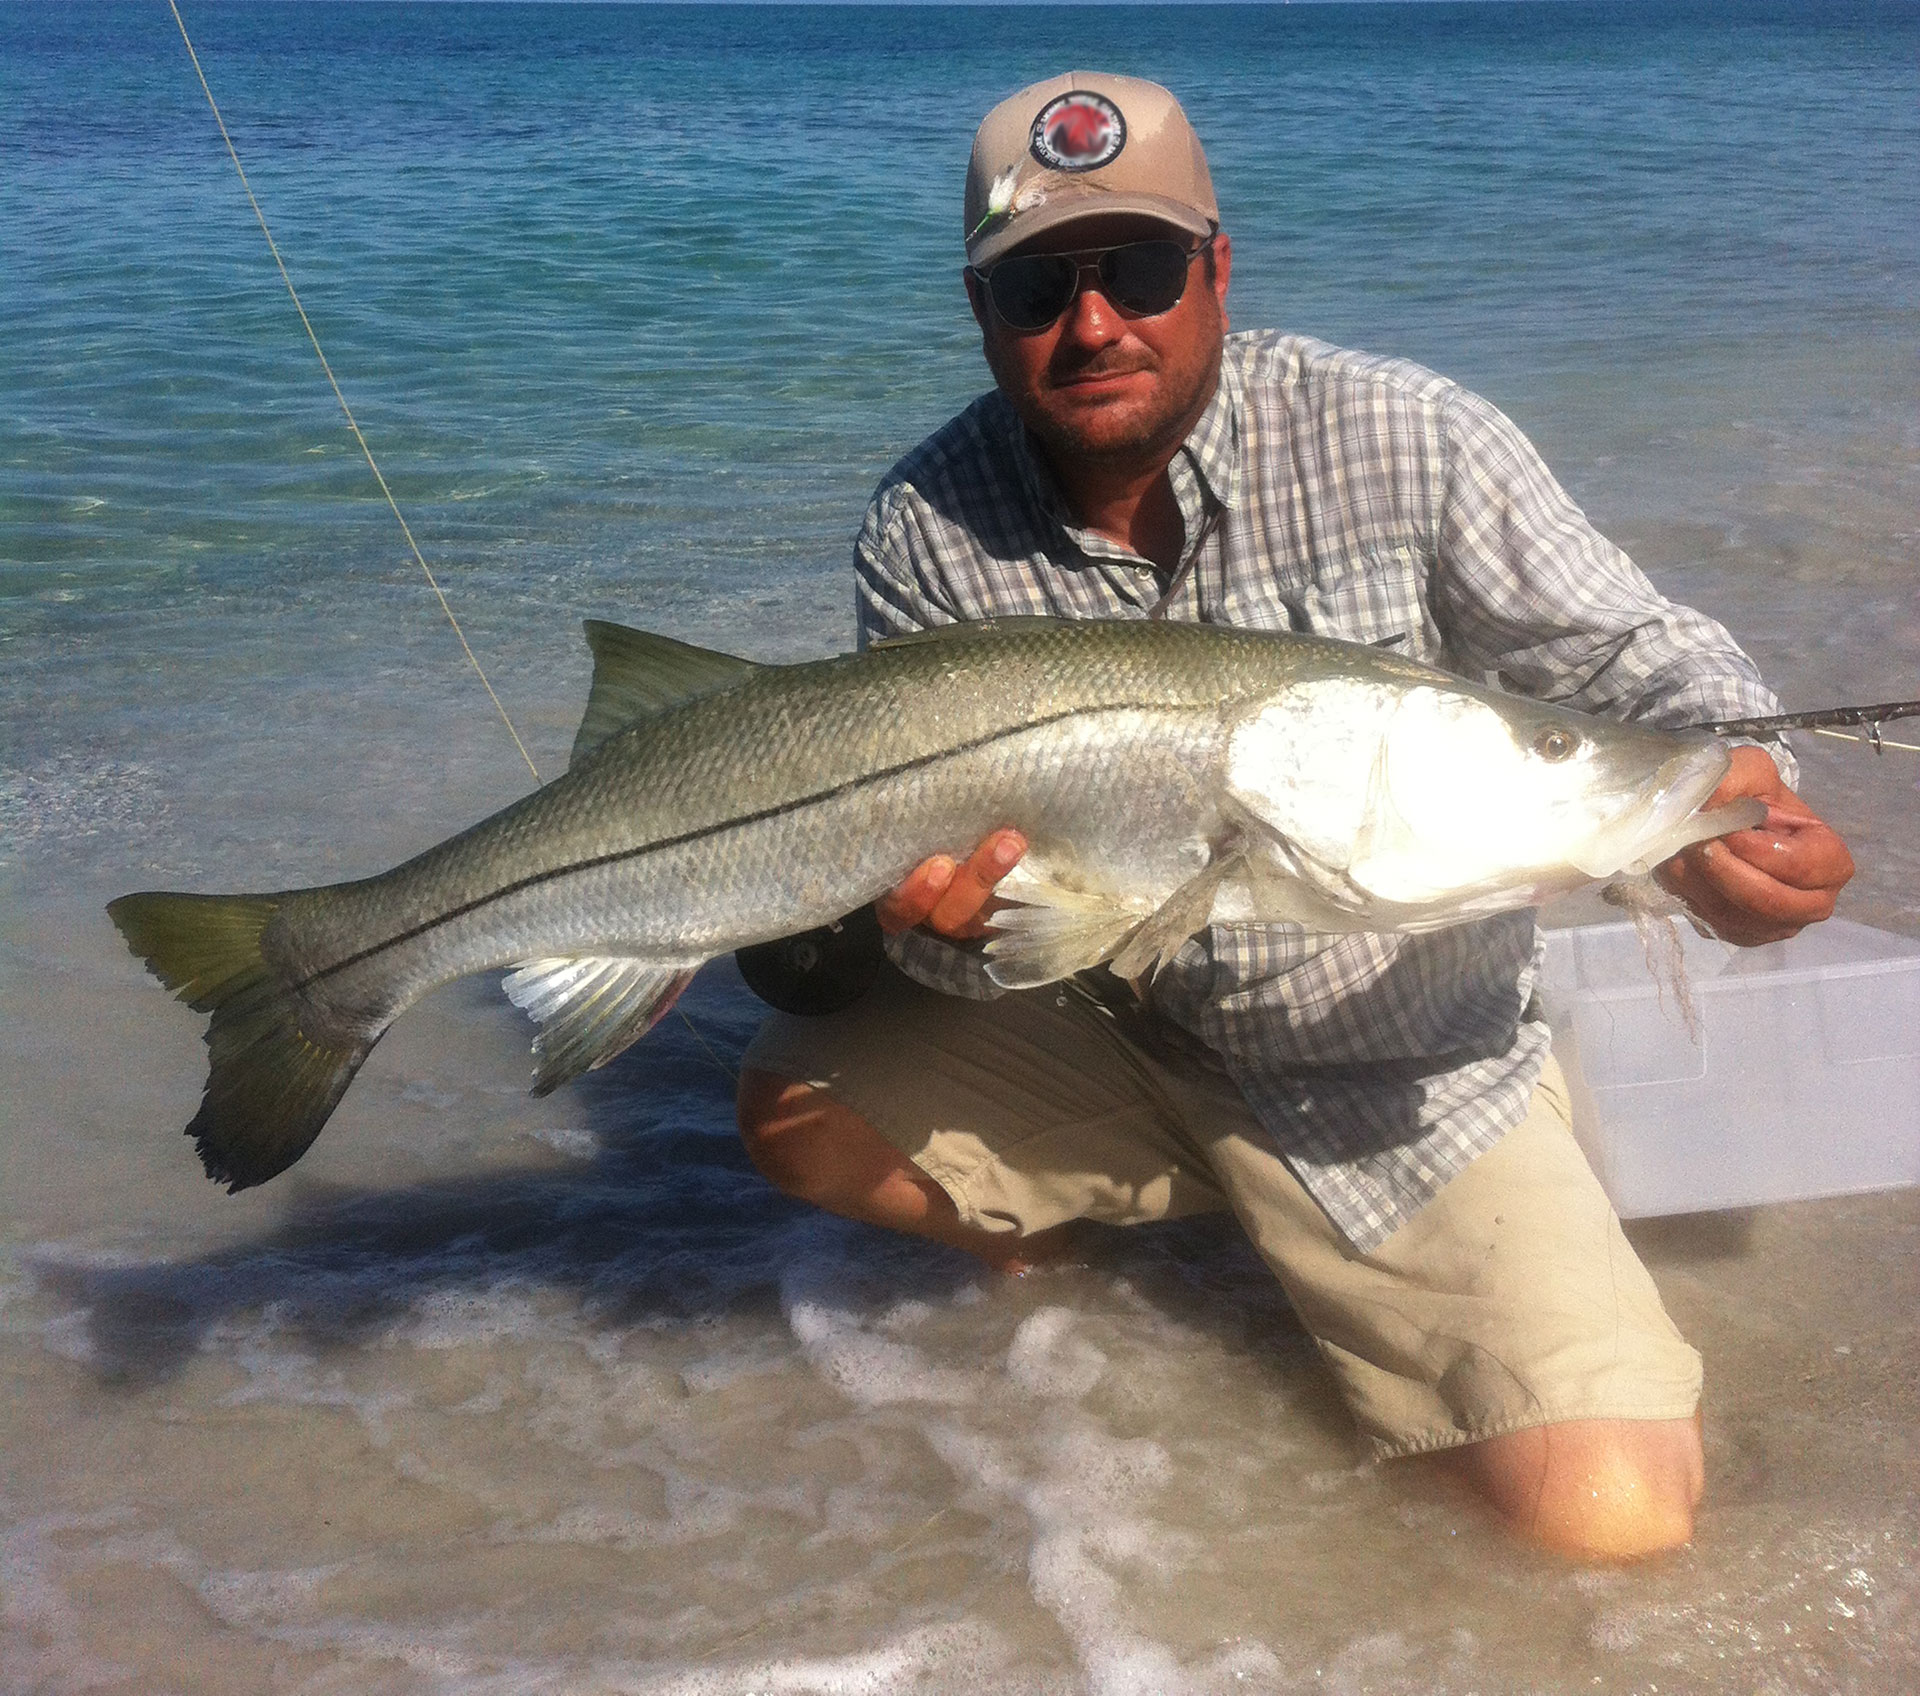 snook fishing in summer